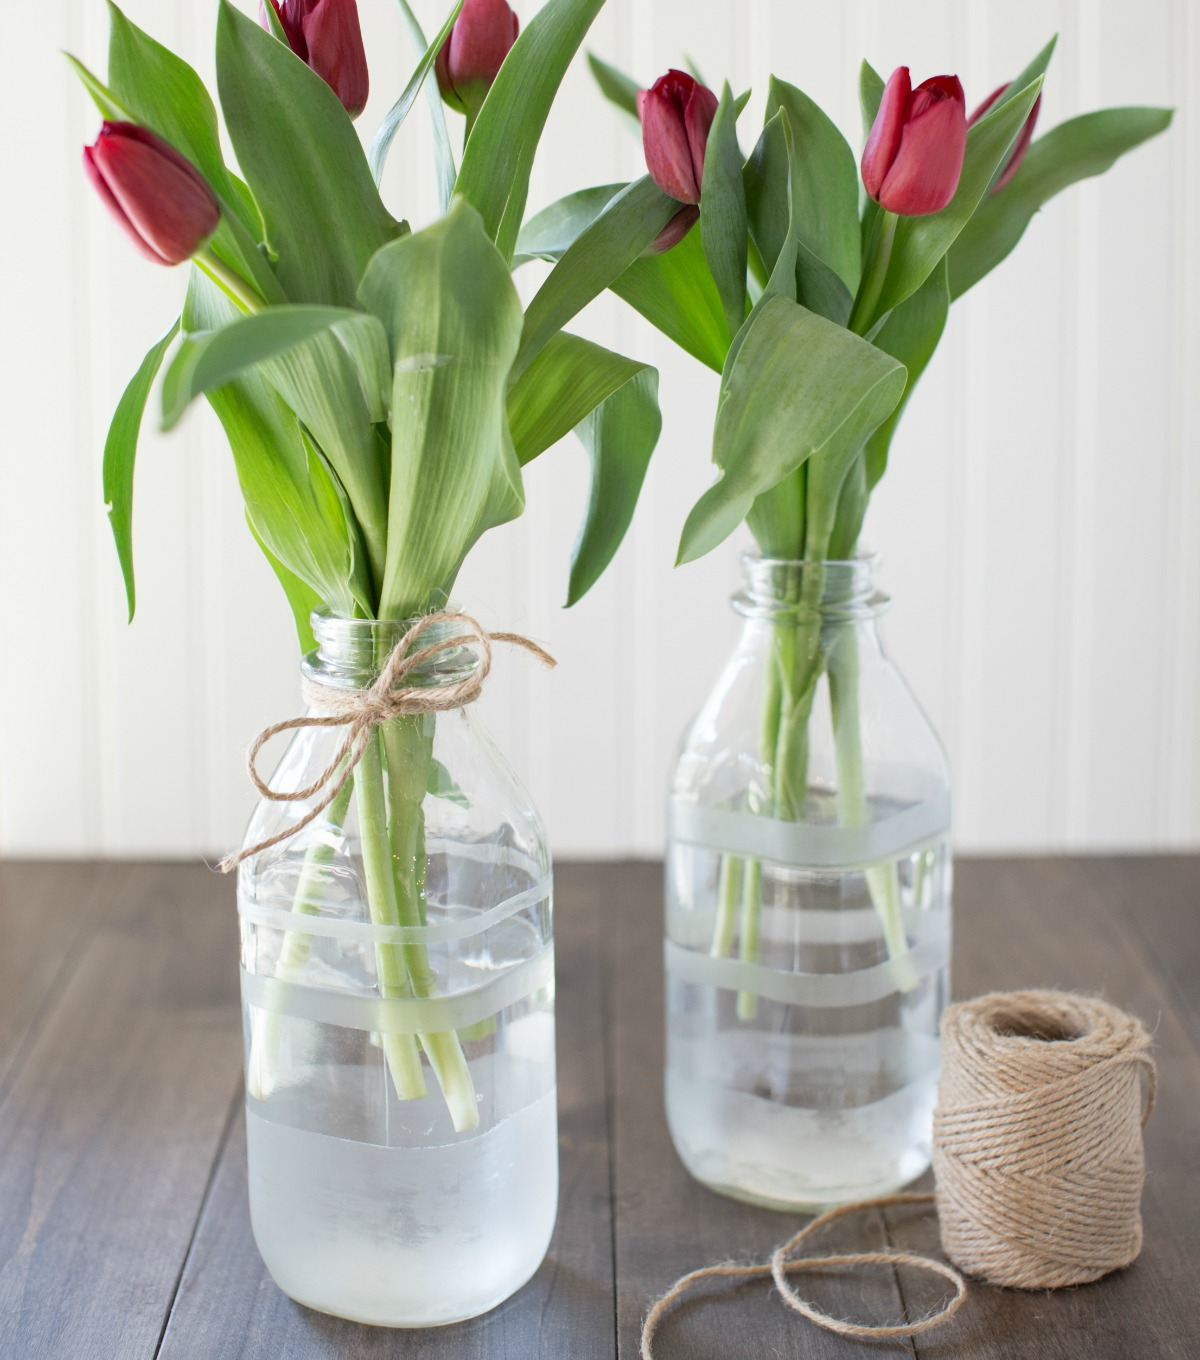 DIY Etches Flower Vases